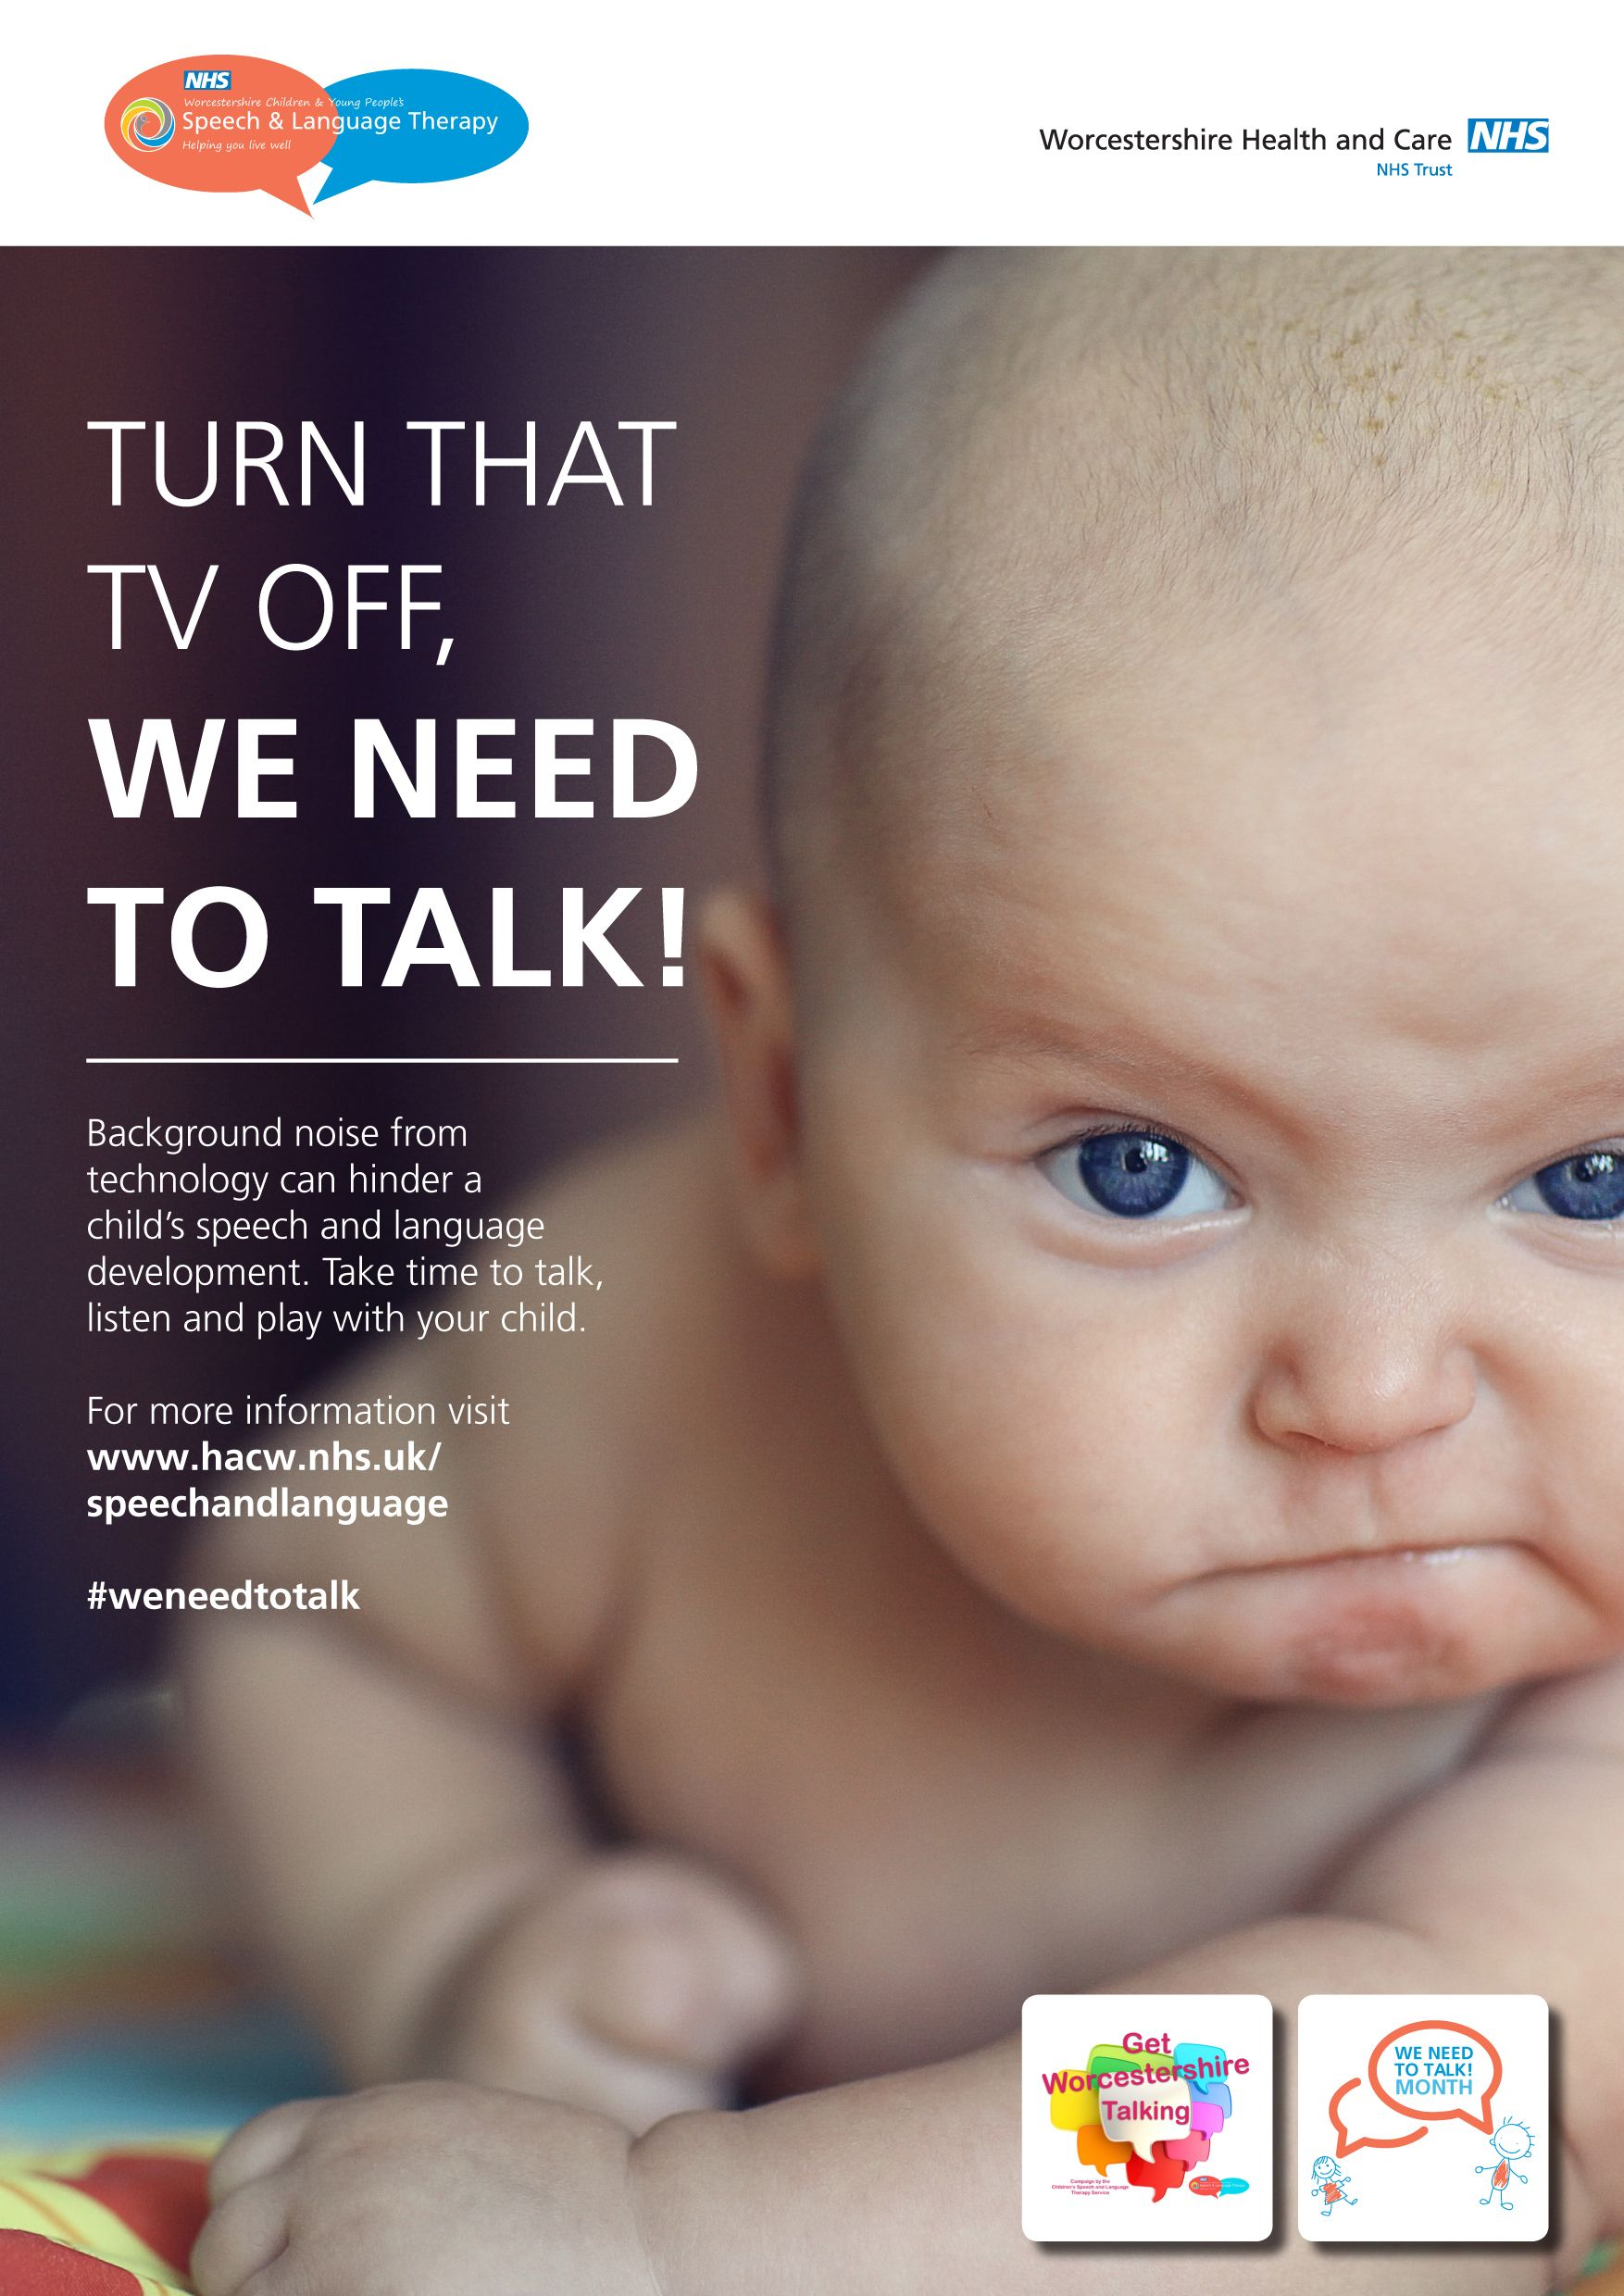 Language development awareness poster from the We Need to Talk